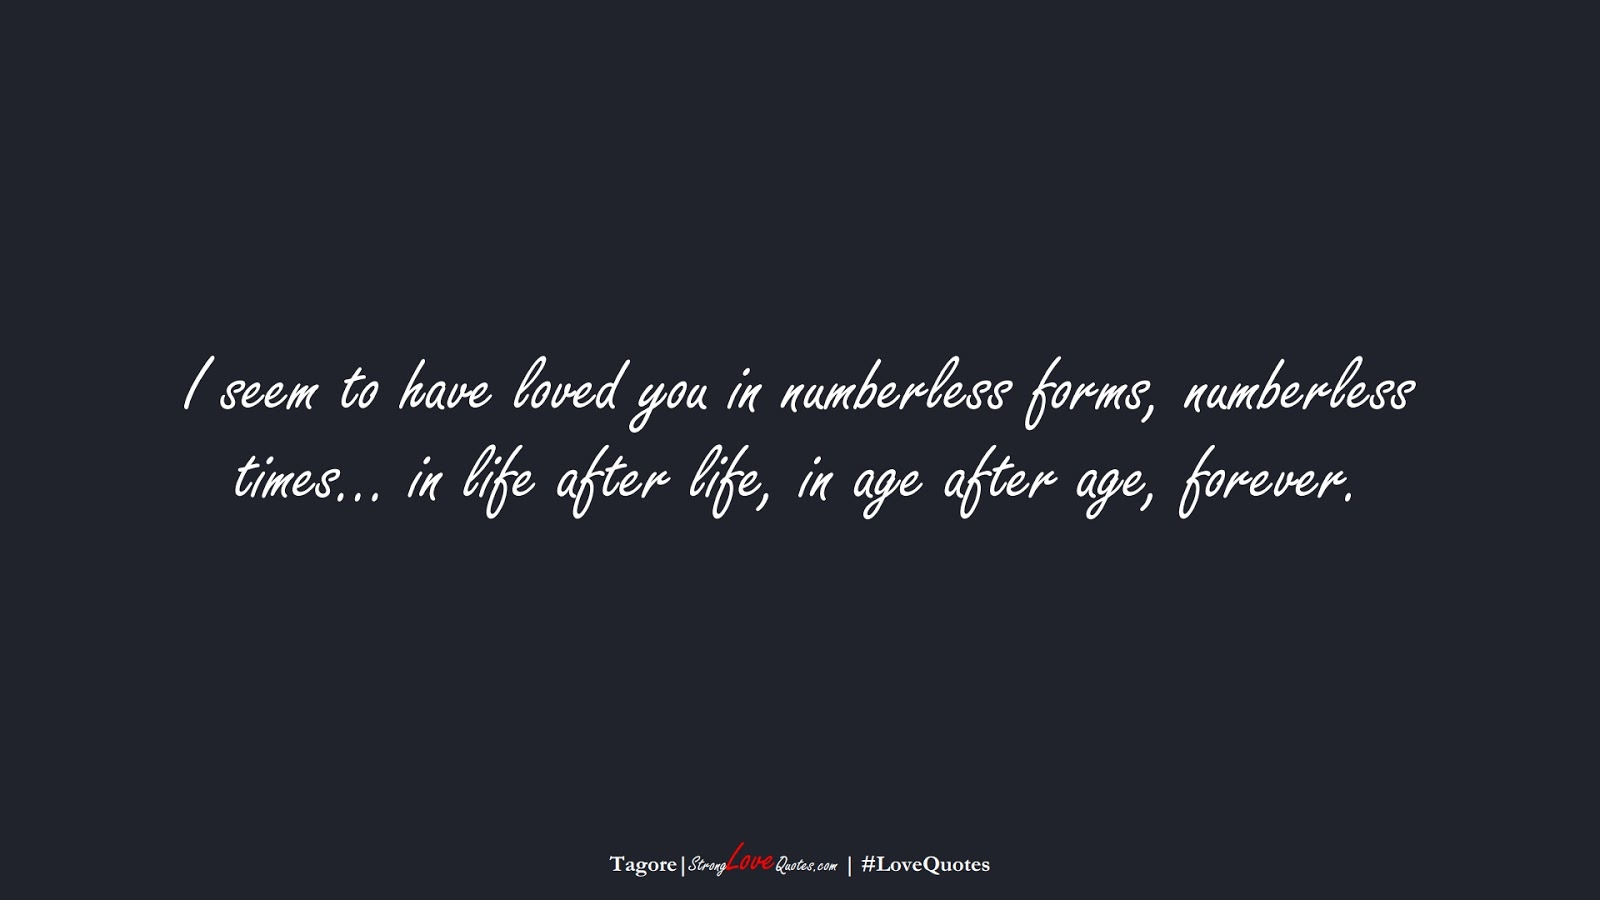 I seem to have loved you in numberless forms, numberless times… in life after life, in age after age, forever. (Tagore);  #LoveQuotes